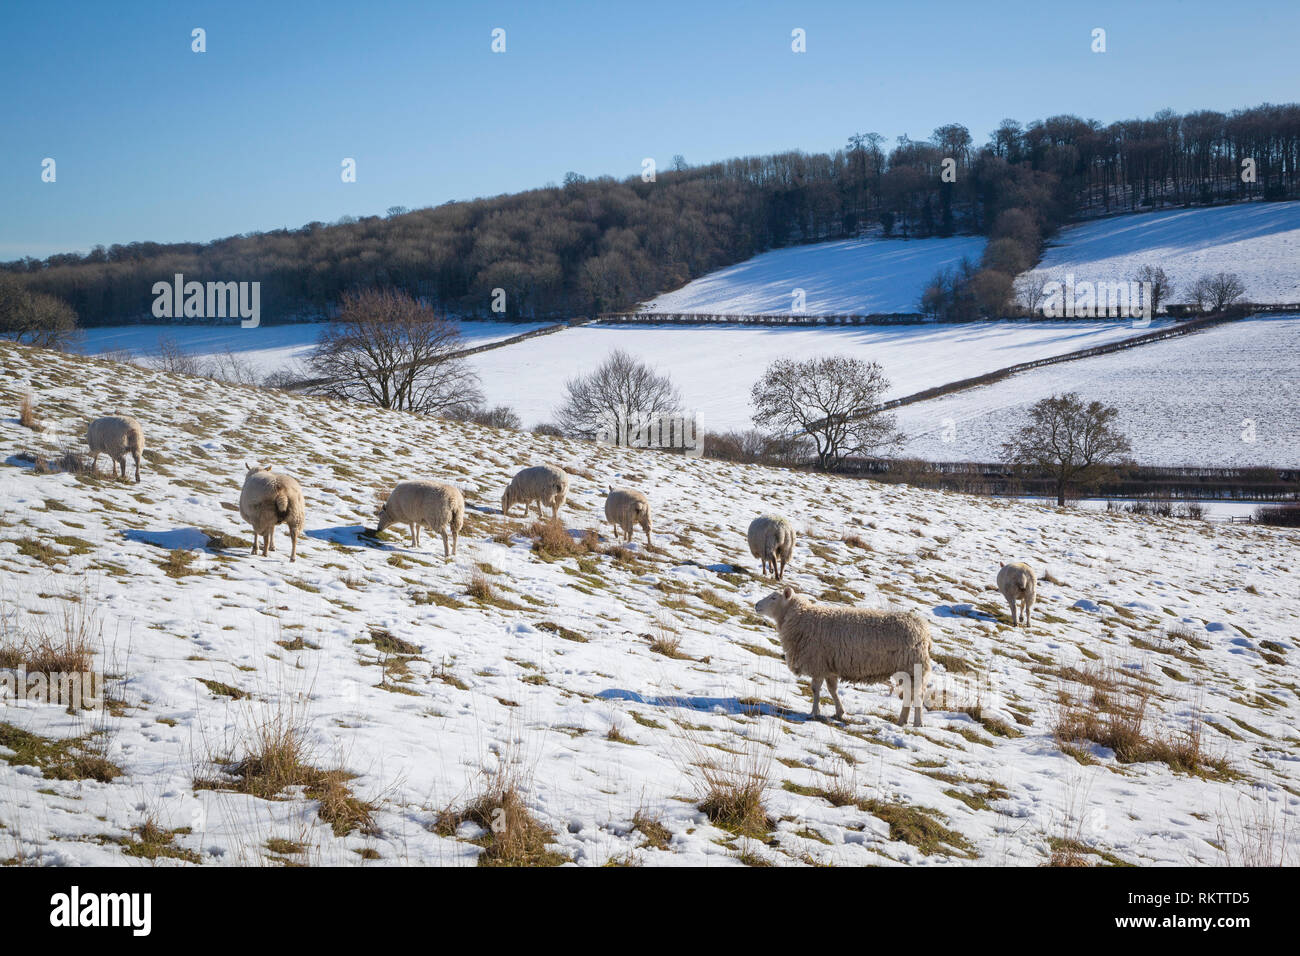 Shhep graze in snow covered fields near the Chiltern village of Fingest, Buckinghamshire. Stock Photo